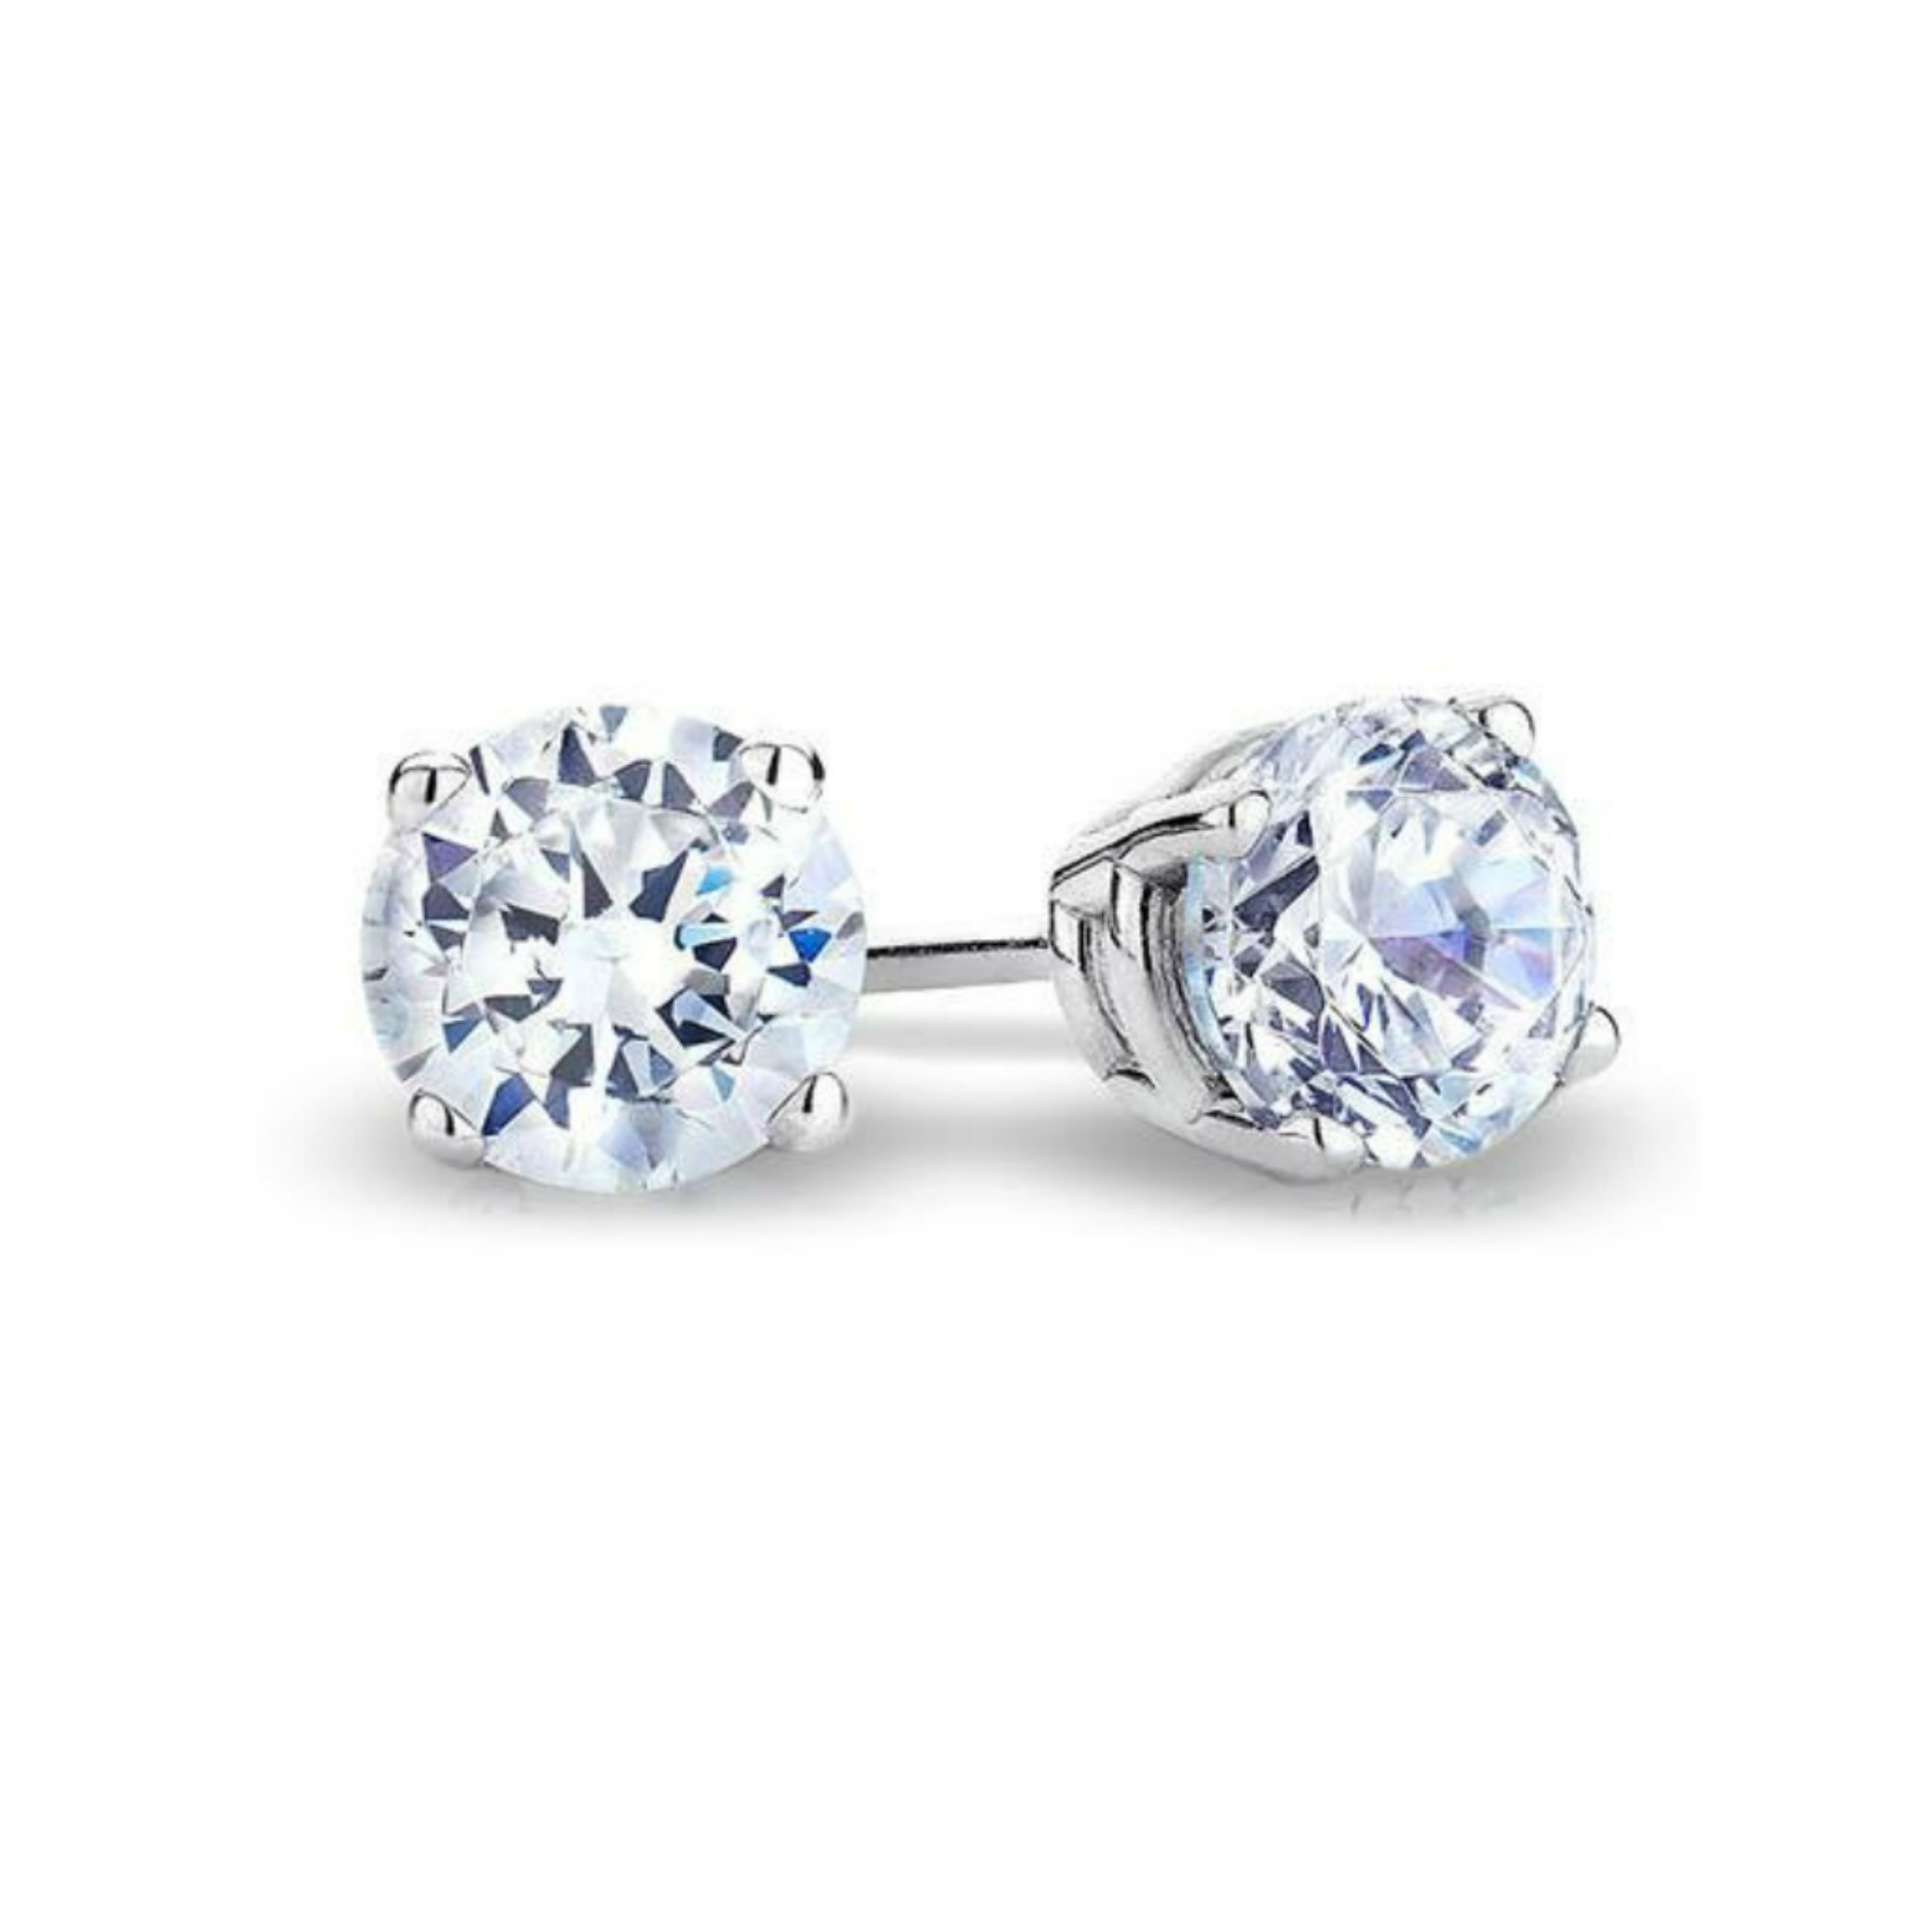 IGI Certified Solitaire Real 14k White Gold Round Diamond Stud Earrings (Color- KL, Clarity I3) (Promo) (Diamond Weight 0.60 Ct) by finediamondjewelry